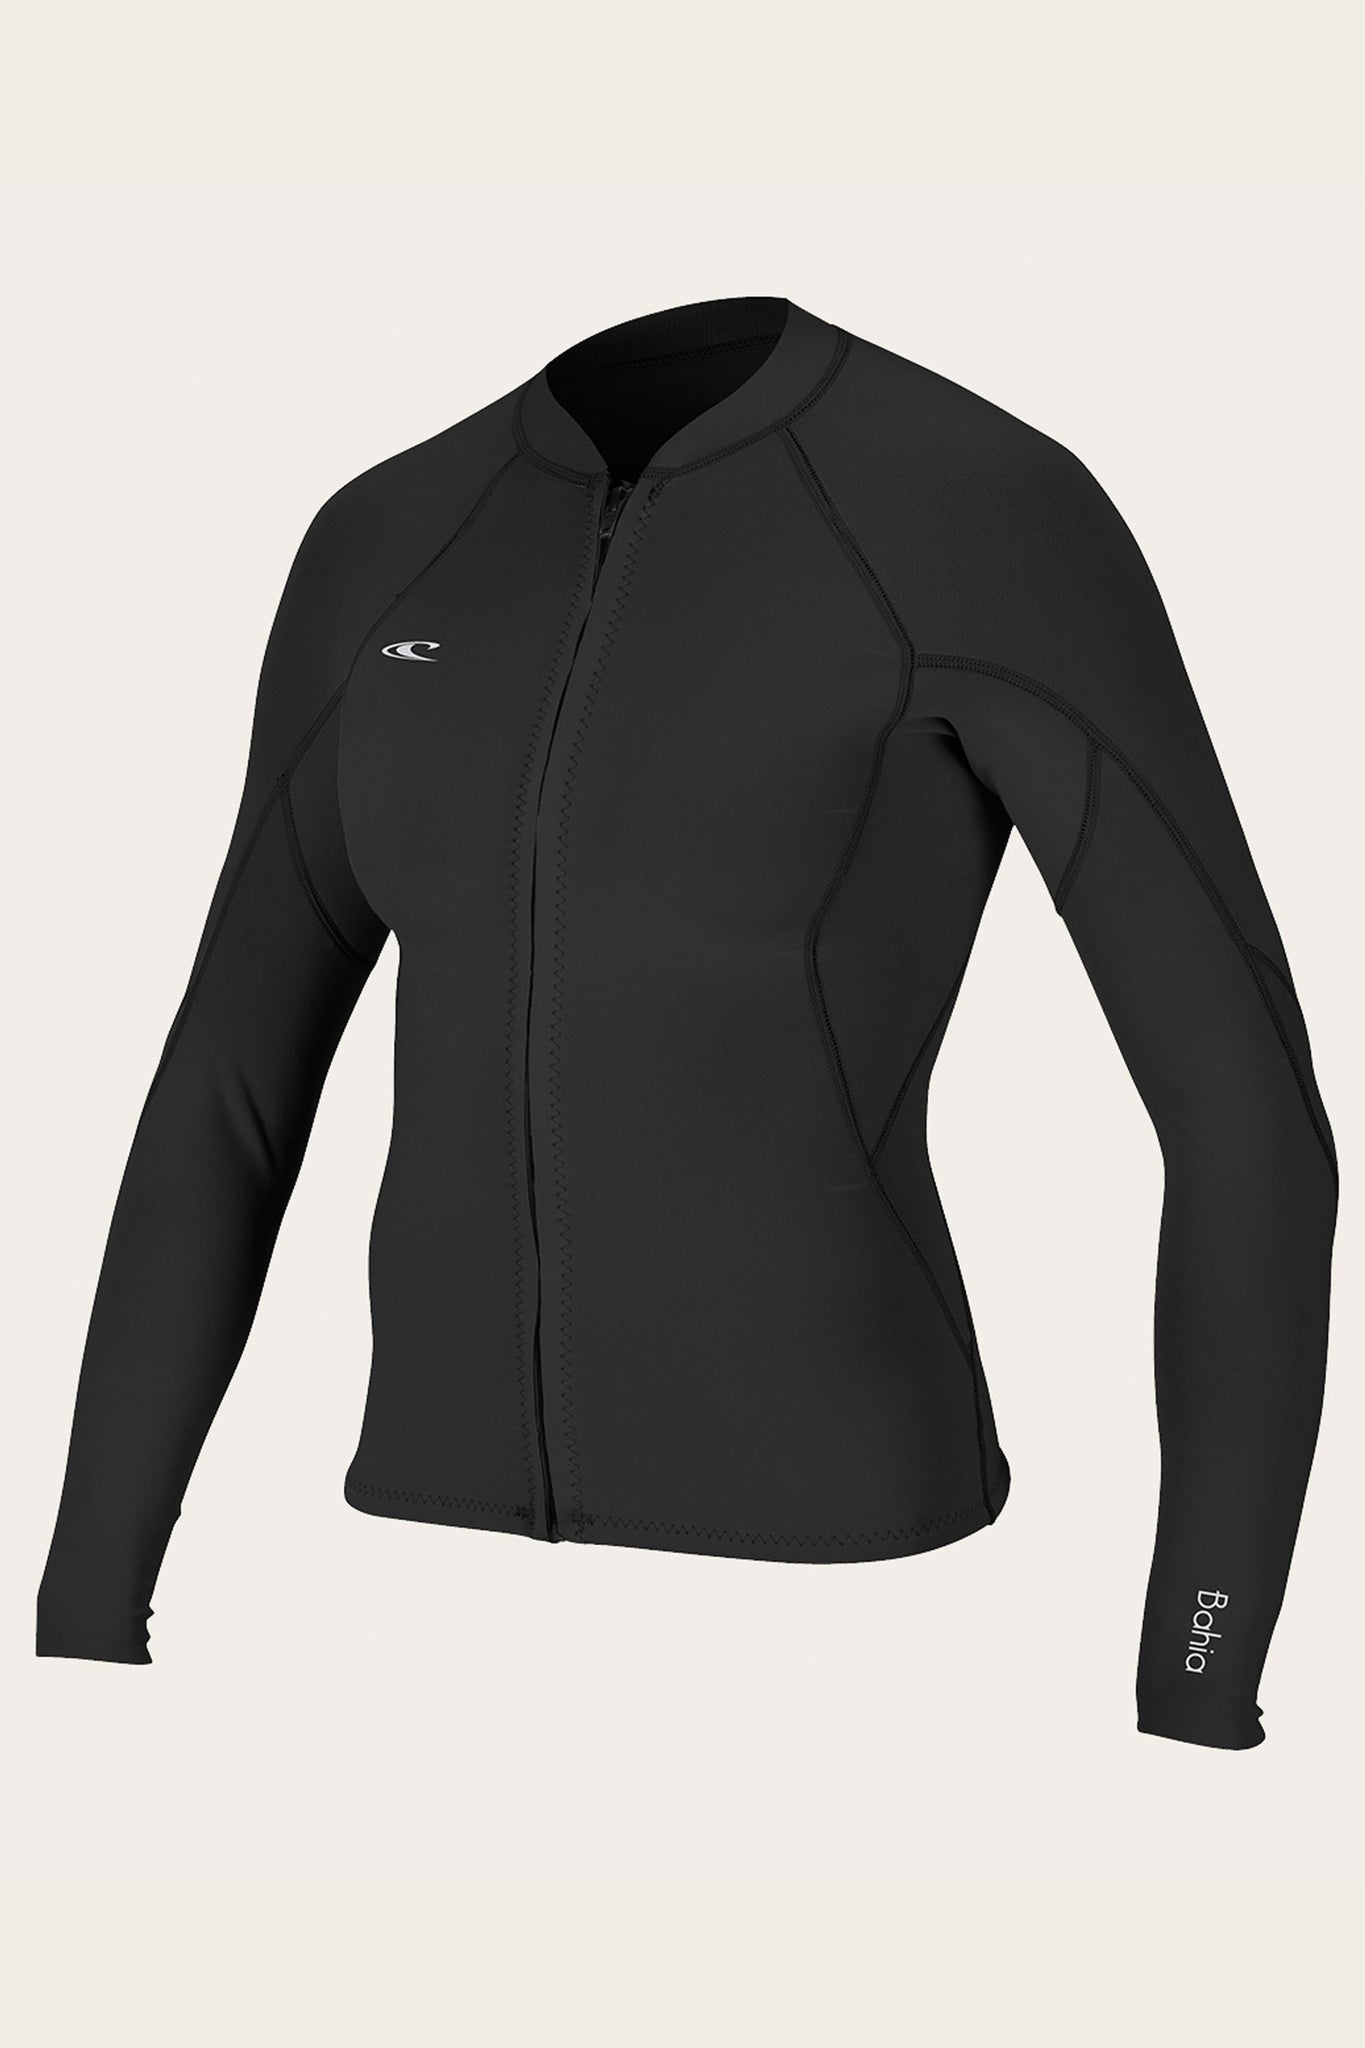 WOMEN'S BAHIA 1/0.5MM FULL ZIP JACKET